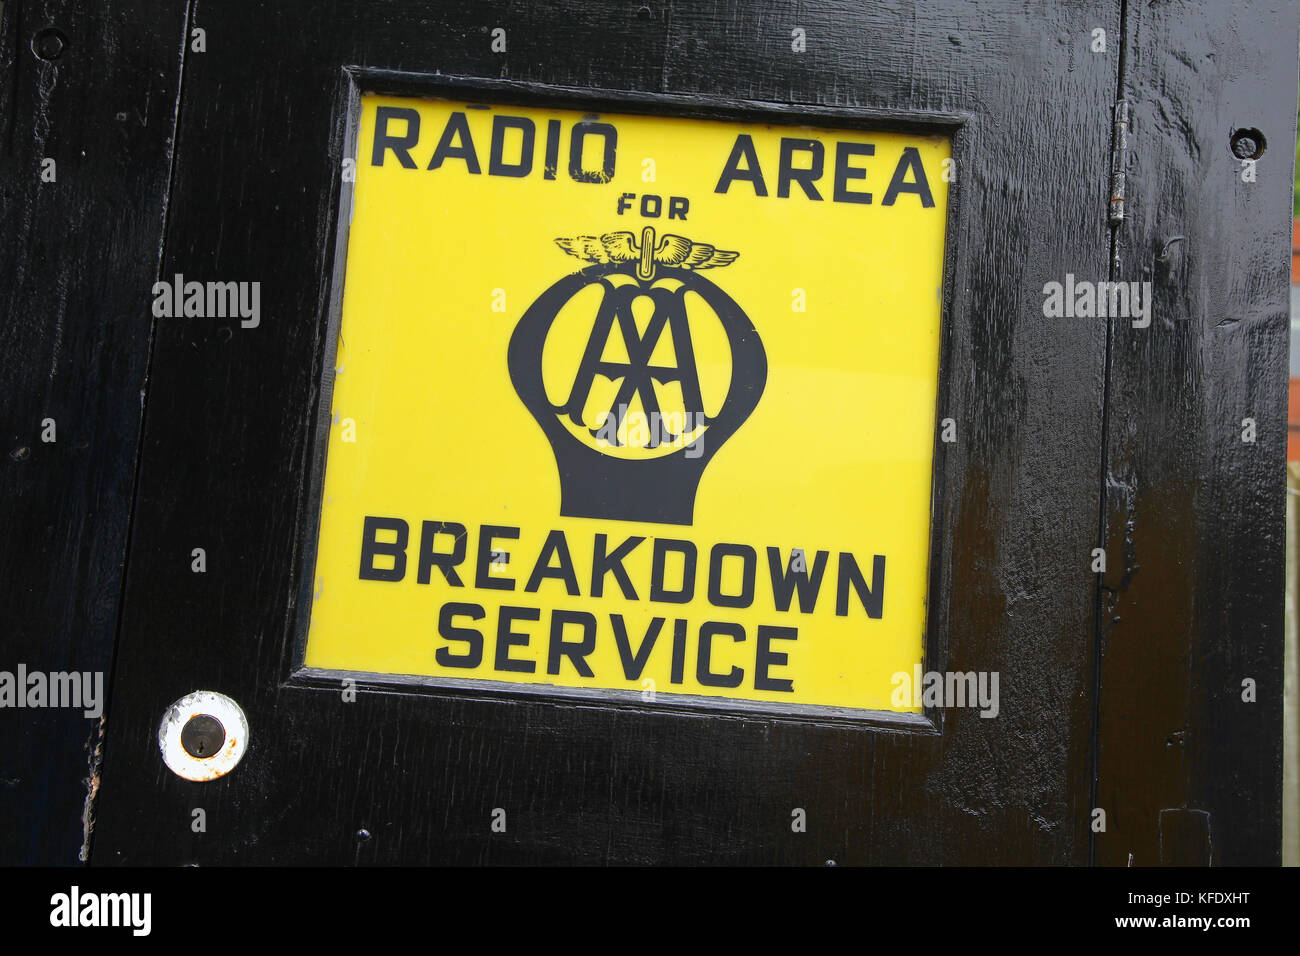 A sign saying Radio Area for the AA Breakdown Service National Telephone Kiosk Collection, Avoncroft Museum of Buildings, - Stock Image